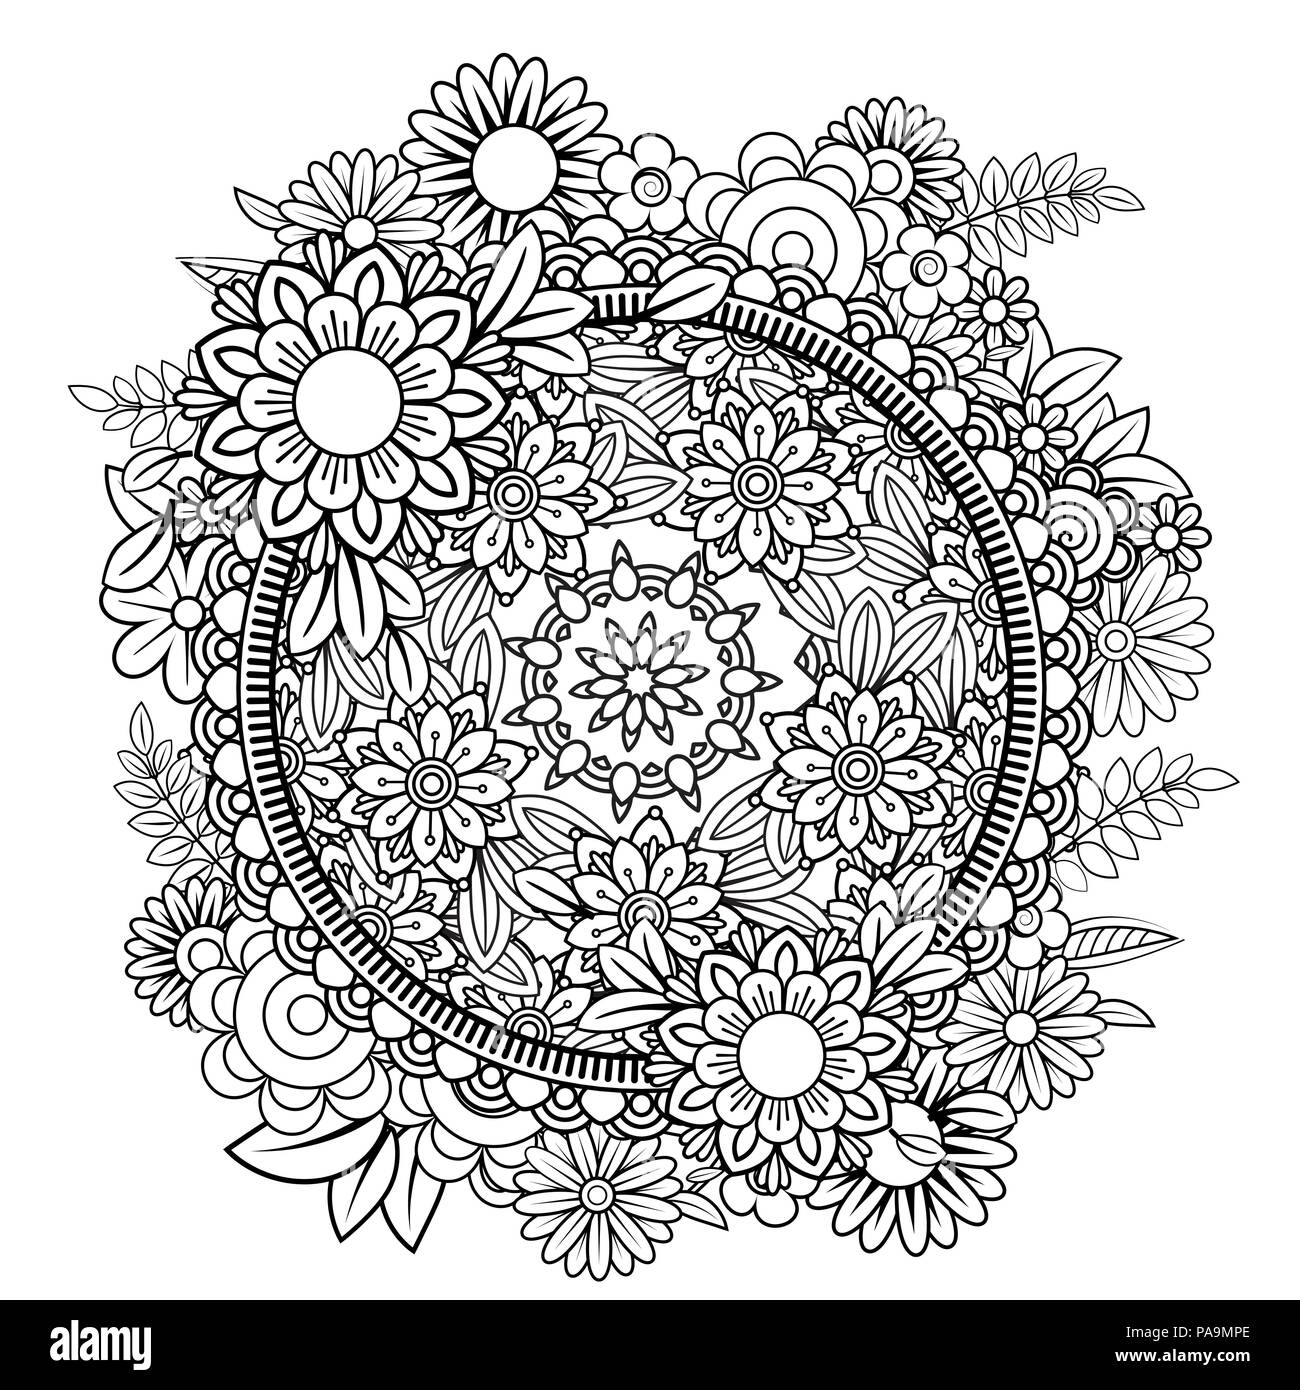 Floral Wreath Coloring Page High Resolution Stock Photography And Images Alamy